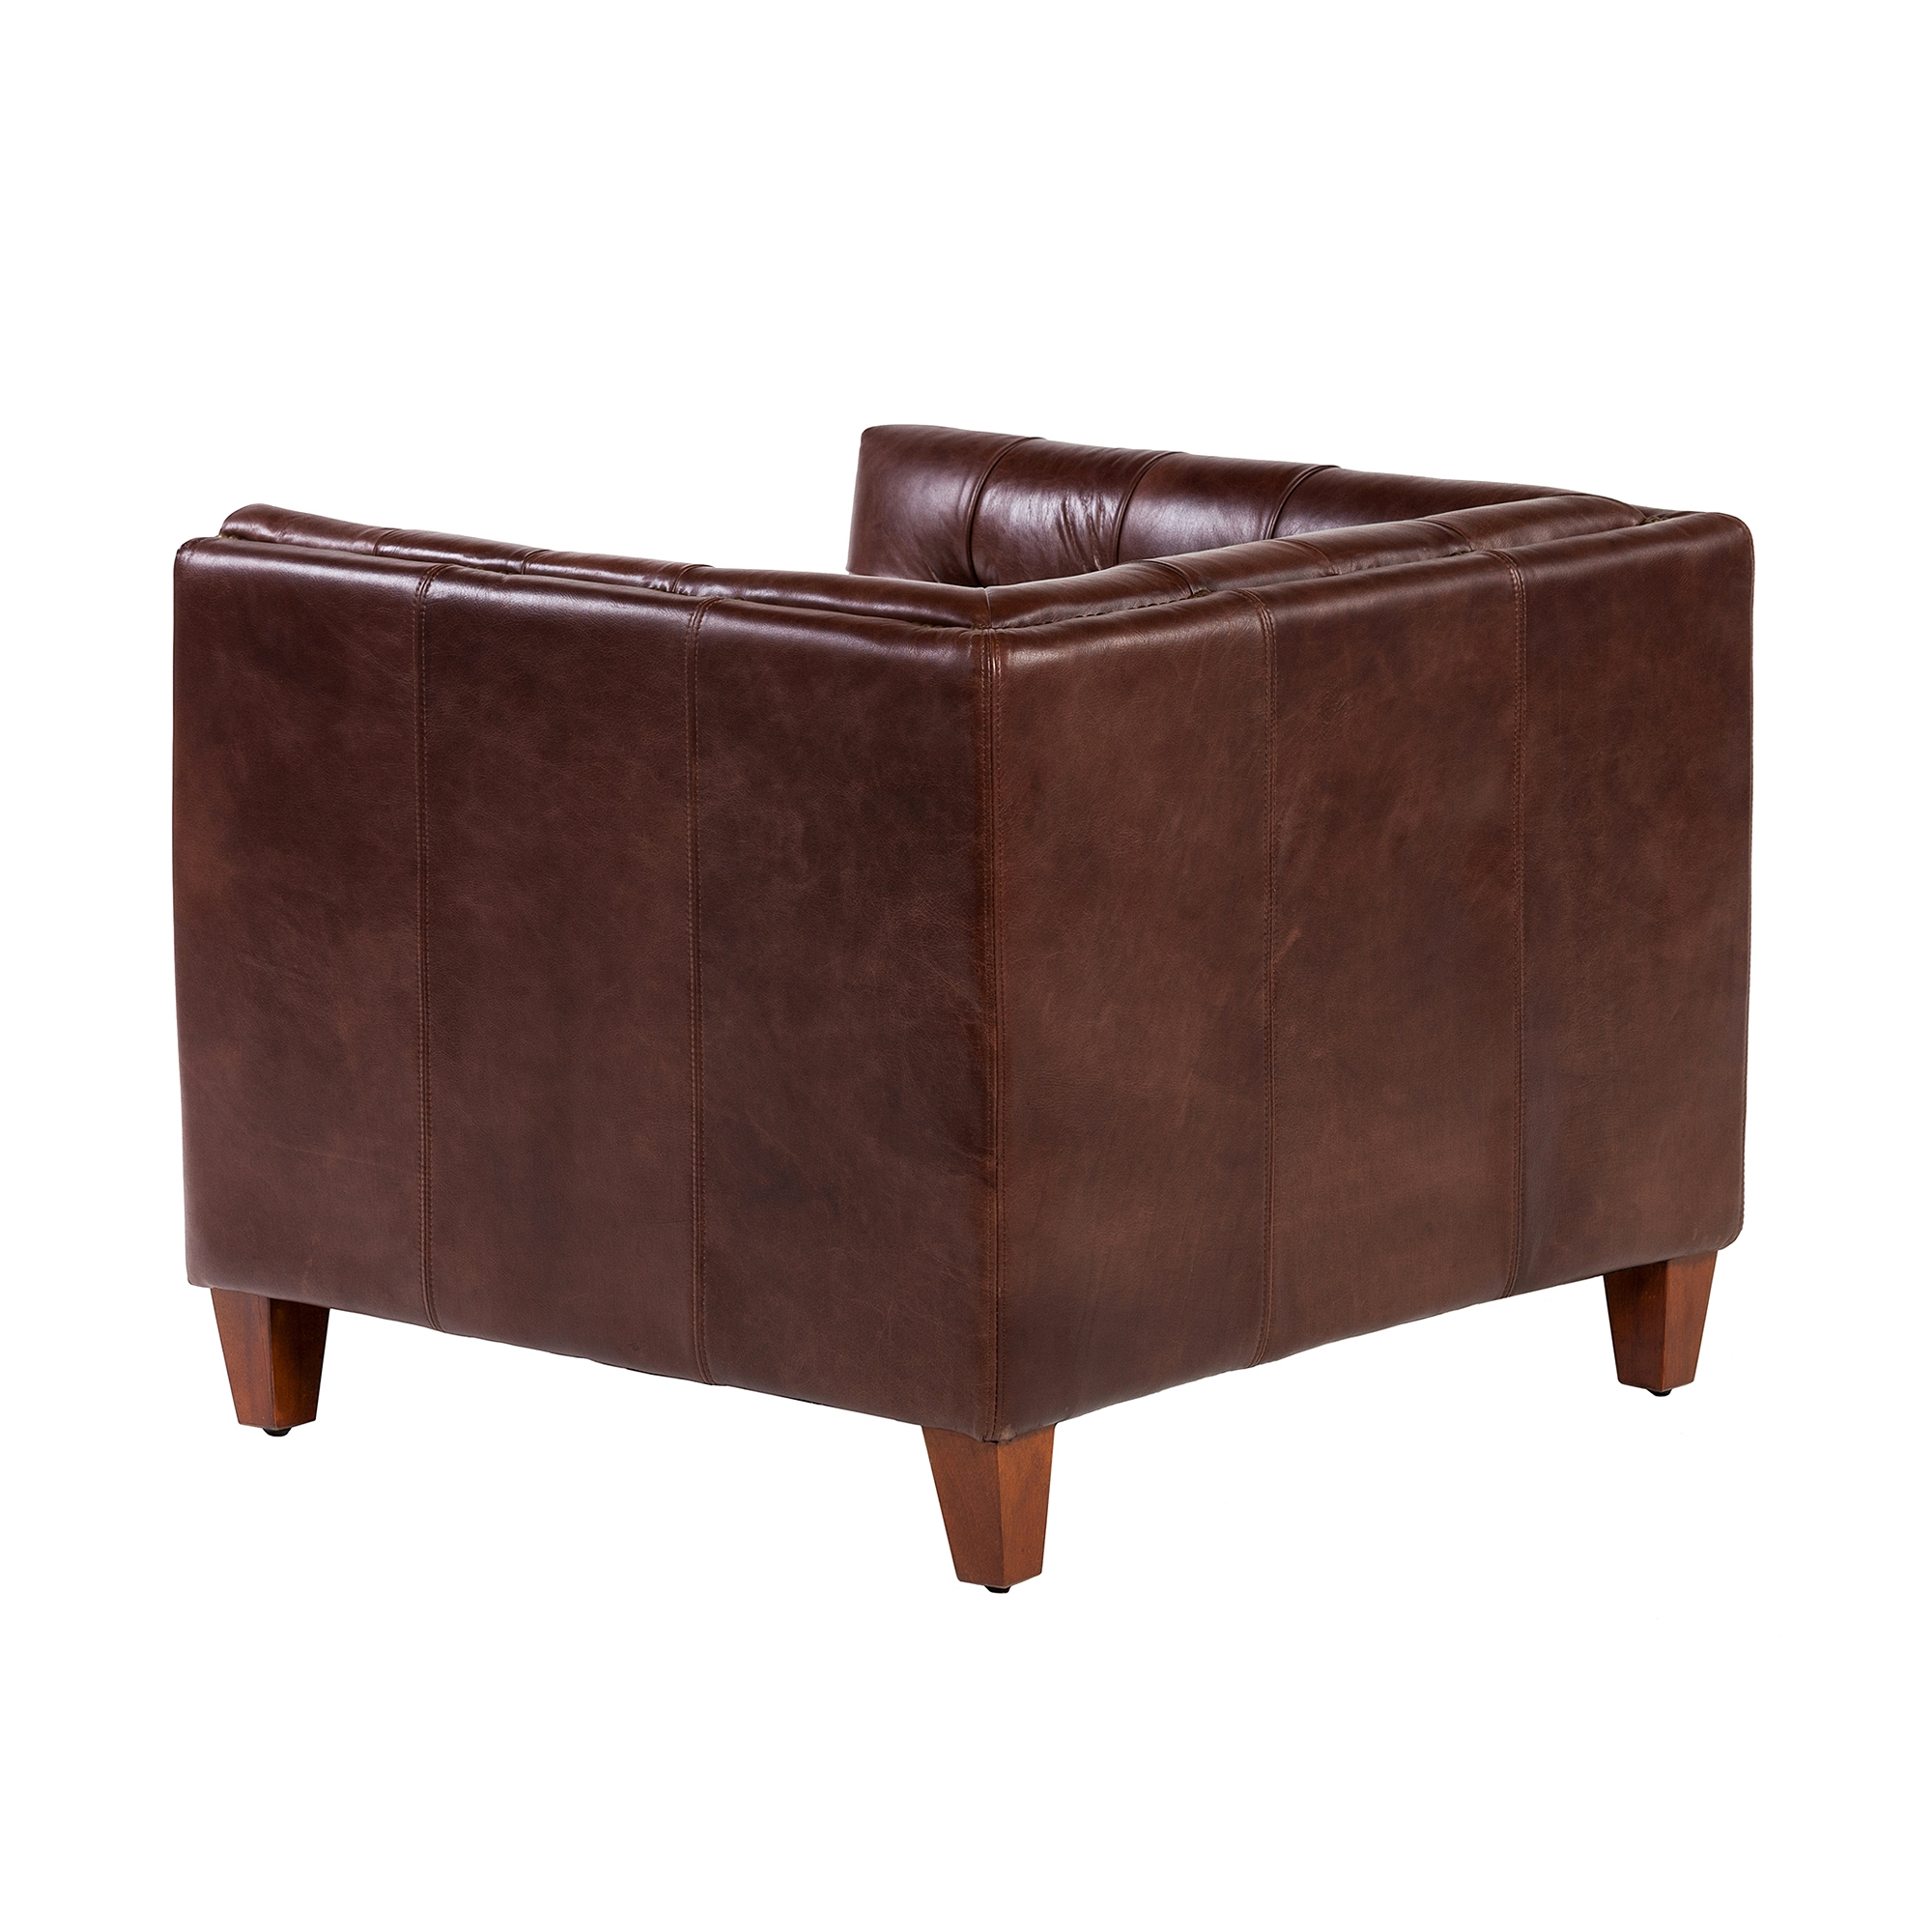 Brown Leather Chairs Cape Town Club Chair In Antique Brown Leather The Khazana Home Furnishings